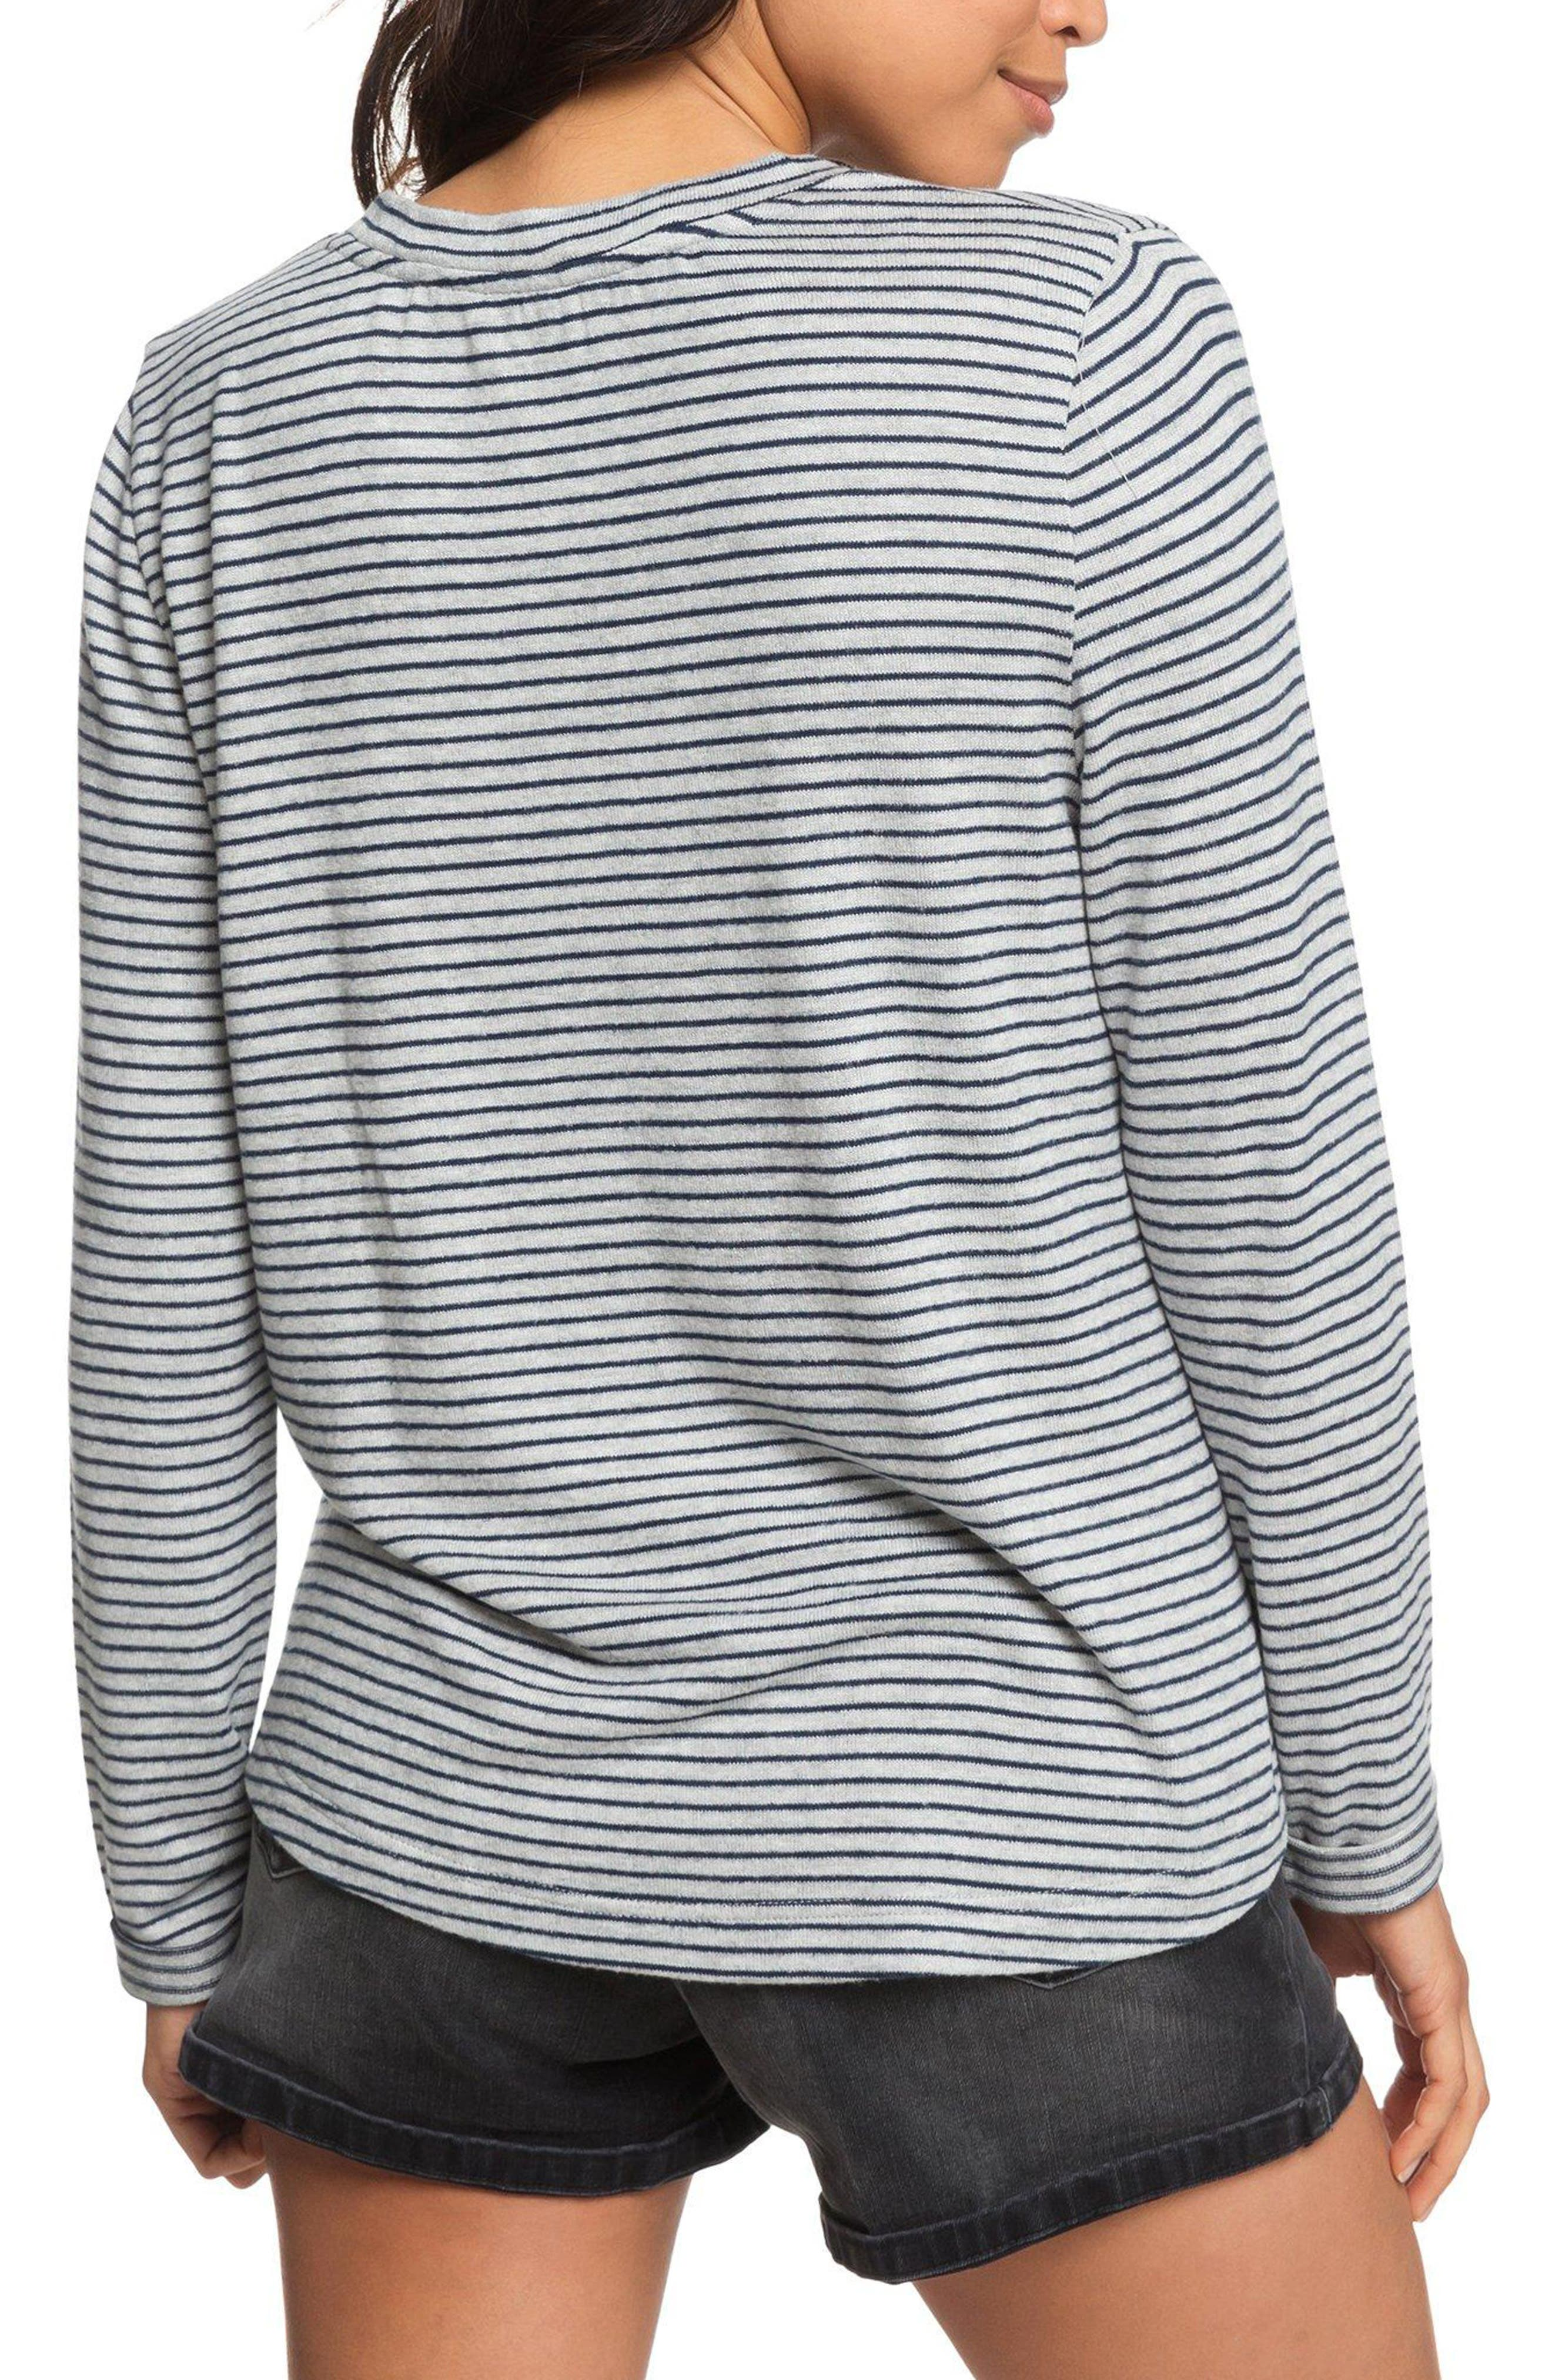 Chasing You Stripe Knit Top,                             Alternate thumbnail 2, color,                             HERITAGE HEATHER THIN STRIPES